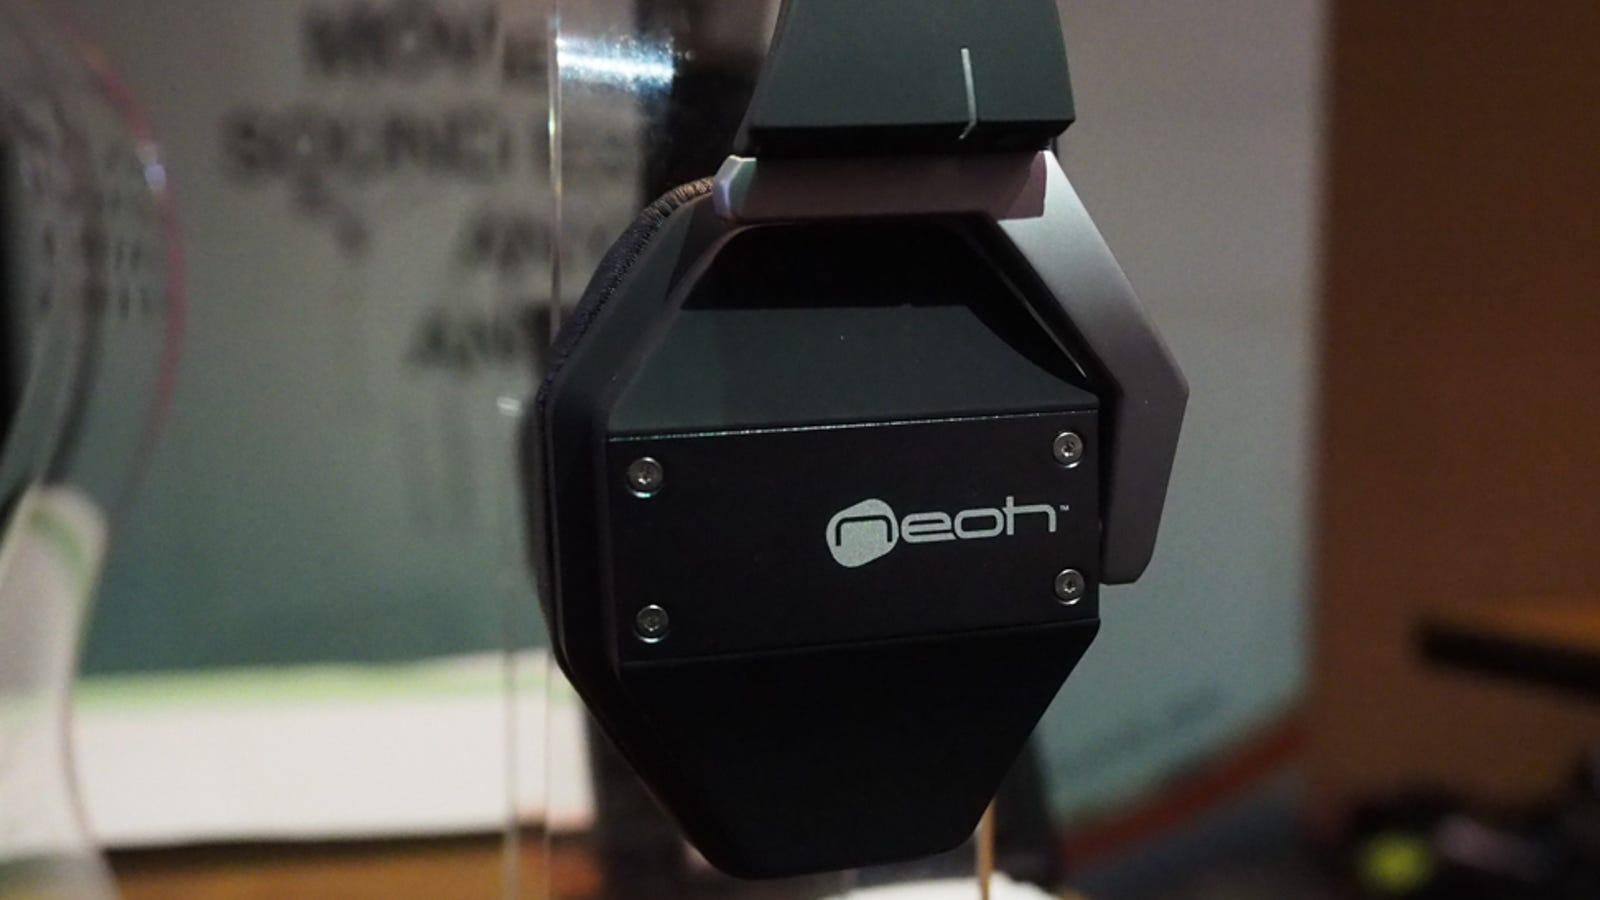 headphone amplifier filo - These Headphones Do For Your Ears What Oculus Rift Does For Your Eyes